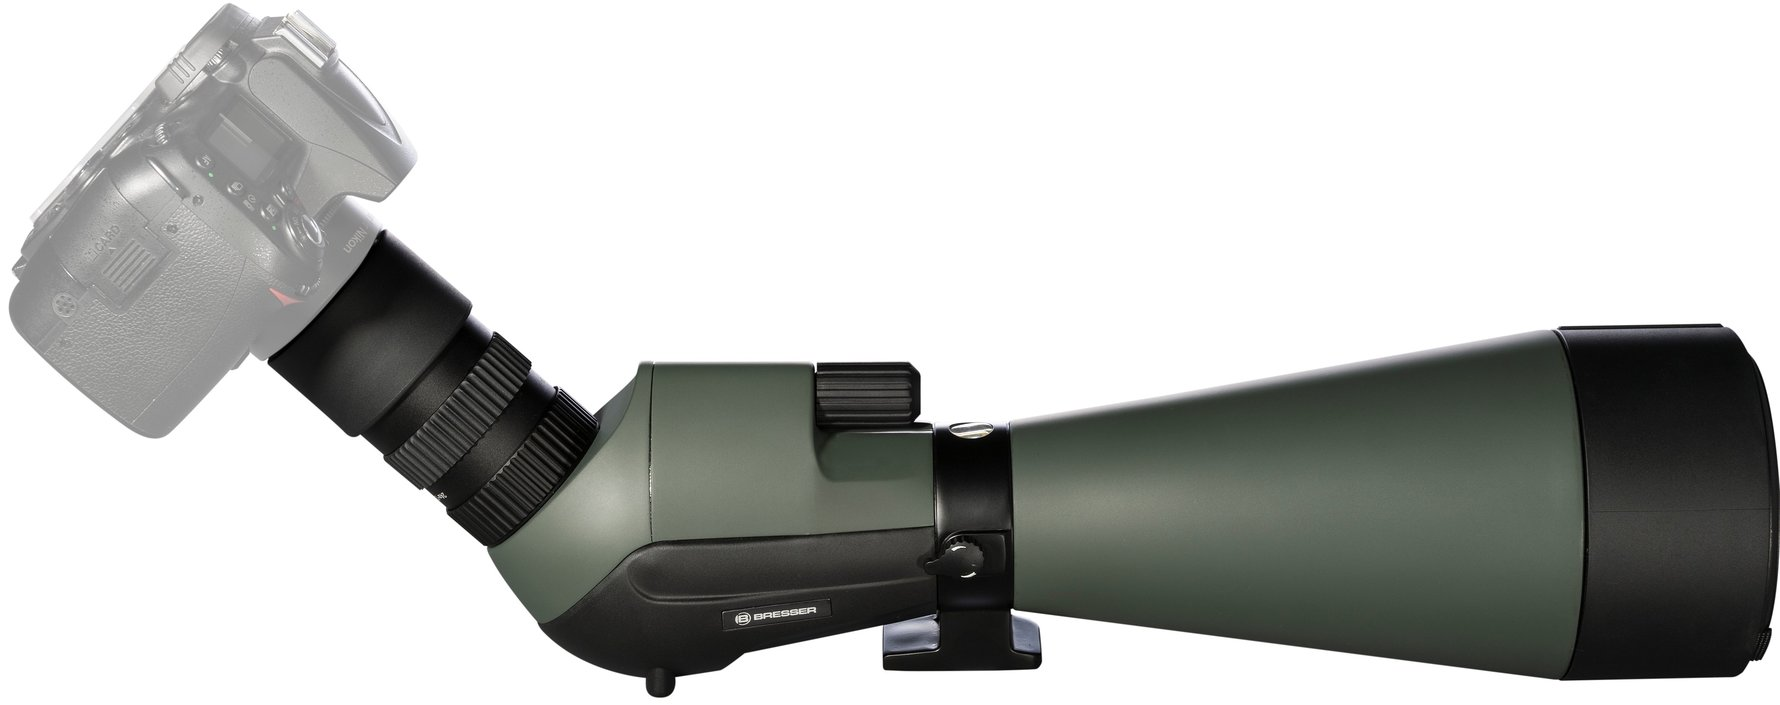 Bresser Condor 24-72x100 spotting scope